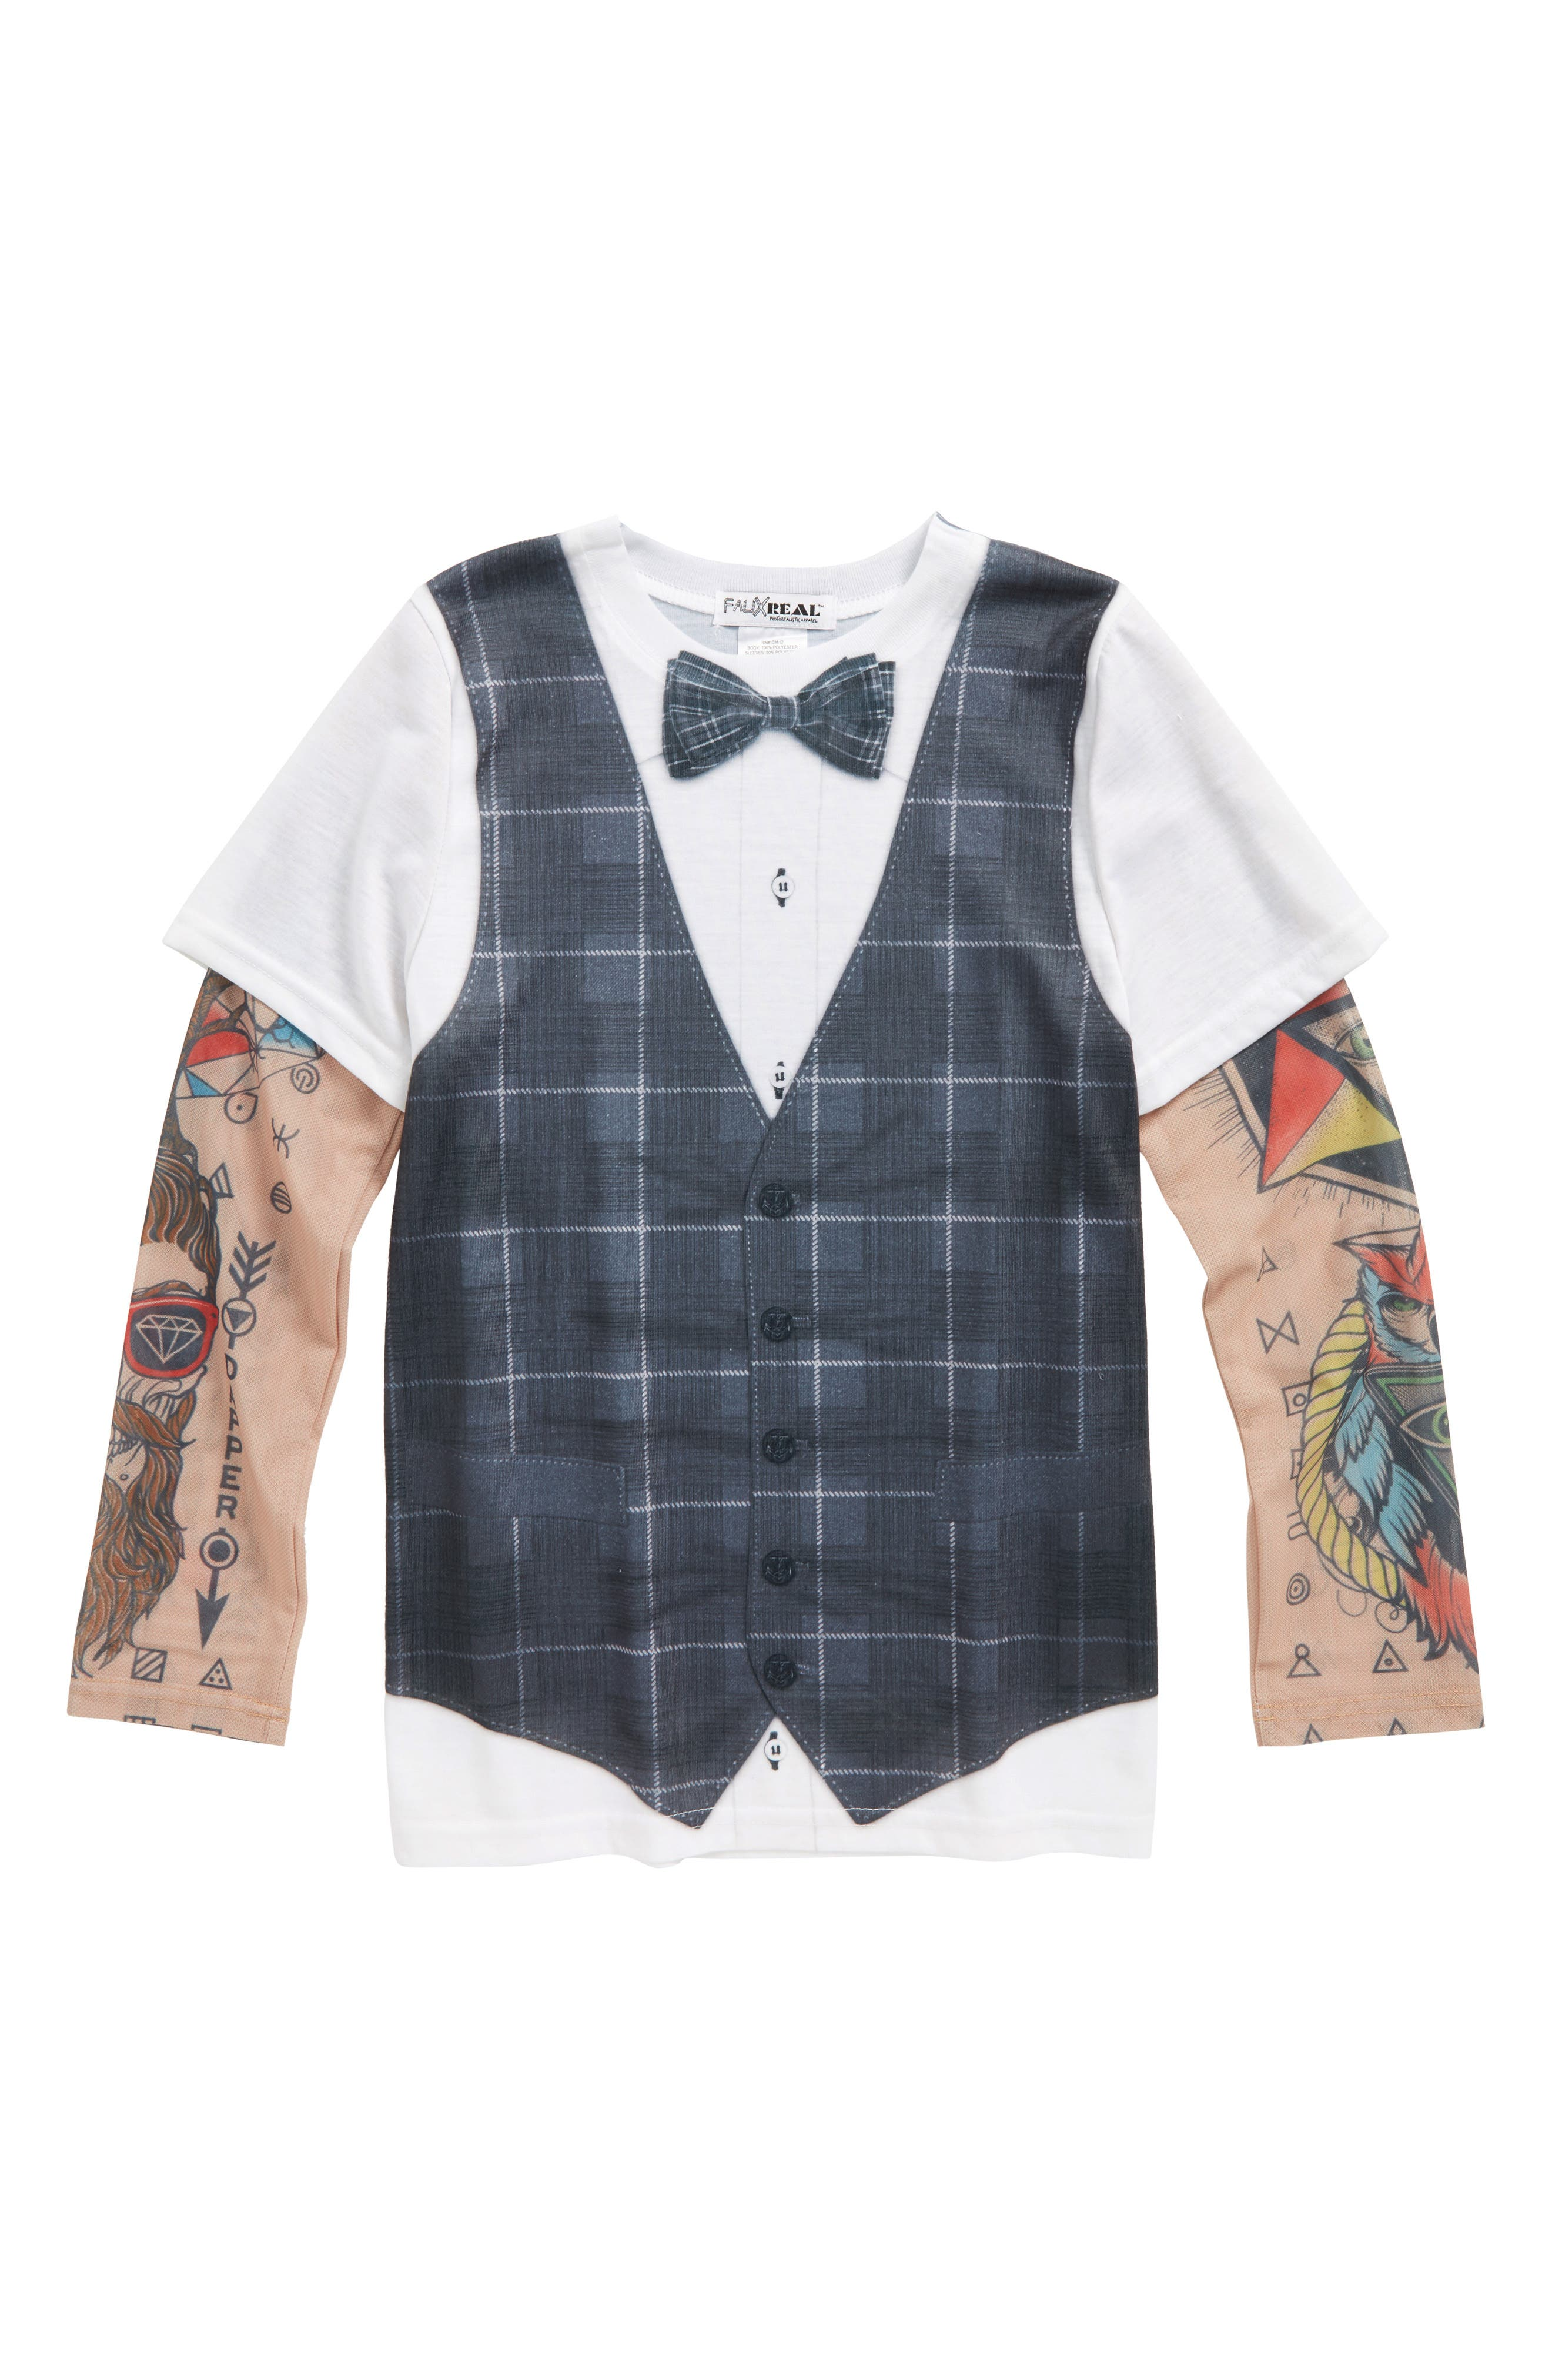 Main Image - Faux Real Hipster Vest & Bow Tie T-Shirt with Tattoo Sleeves (Little Boys & Big Boys)